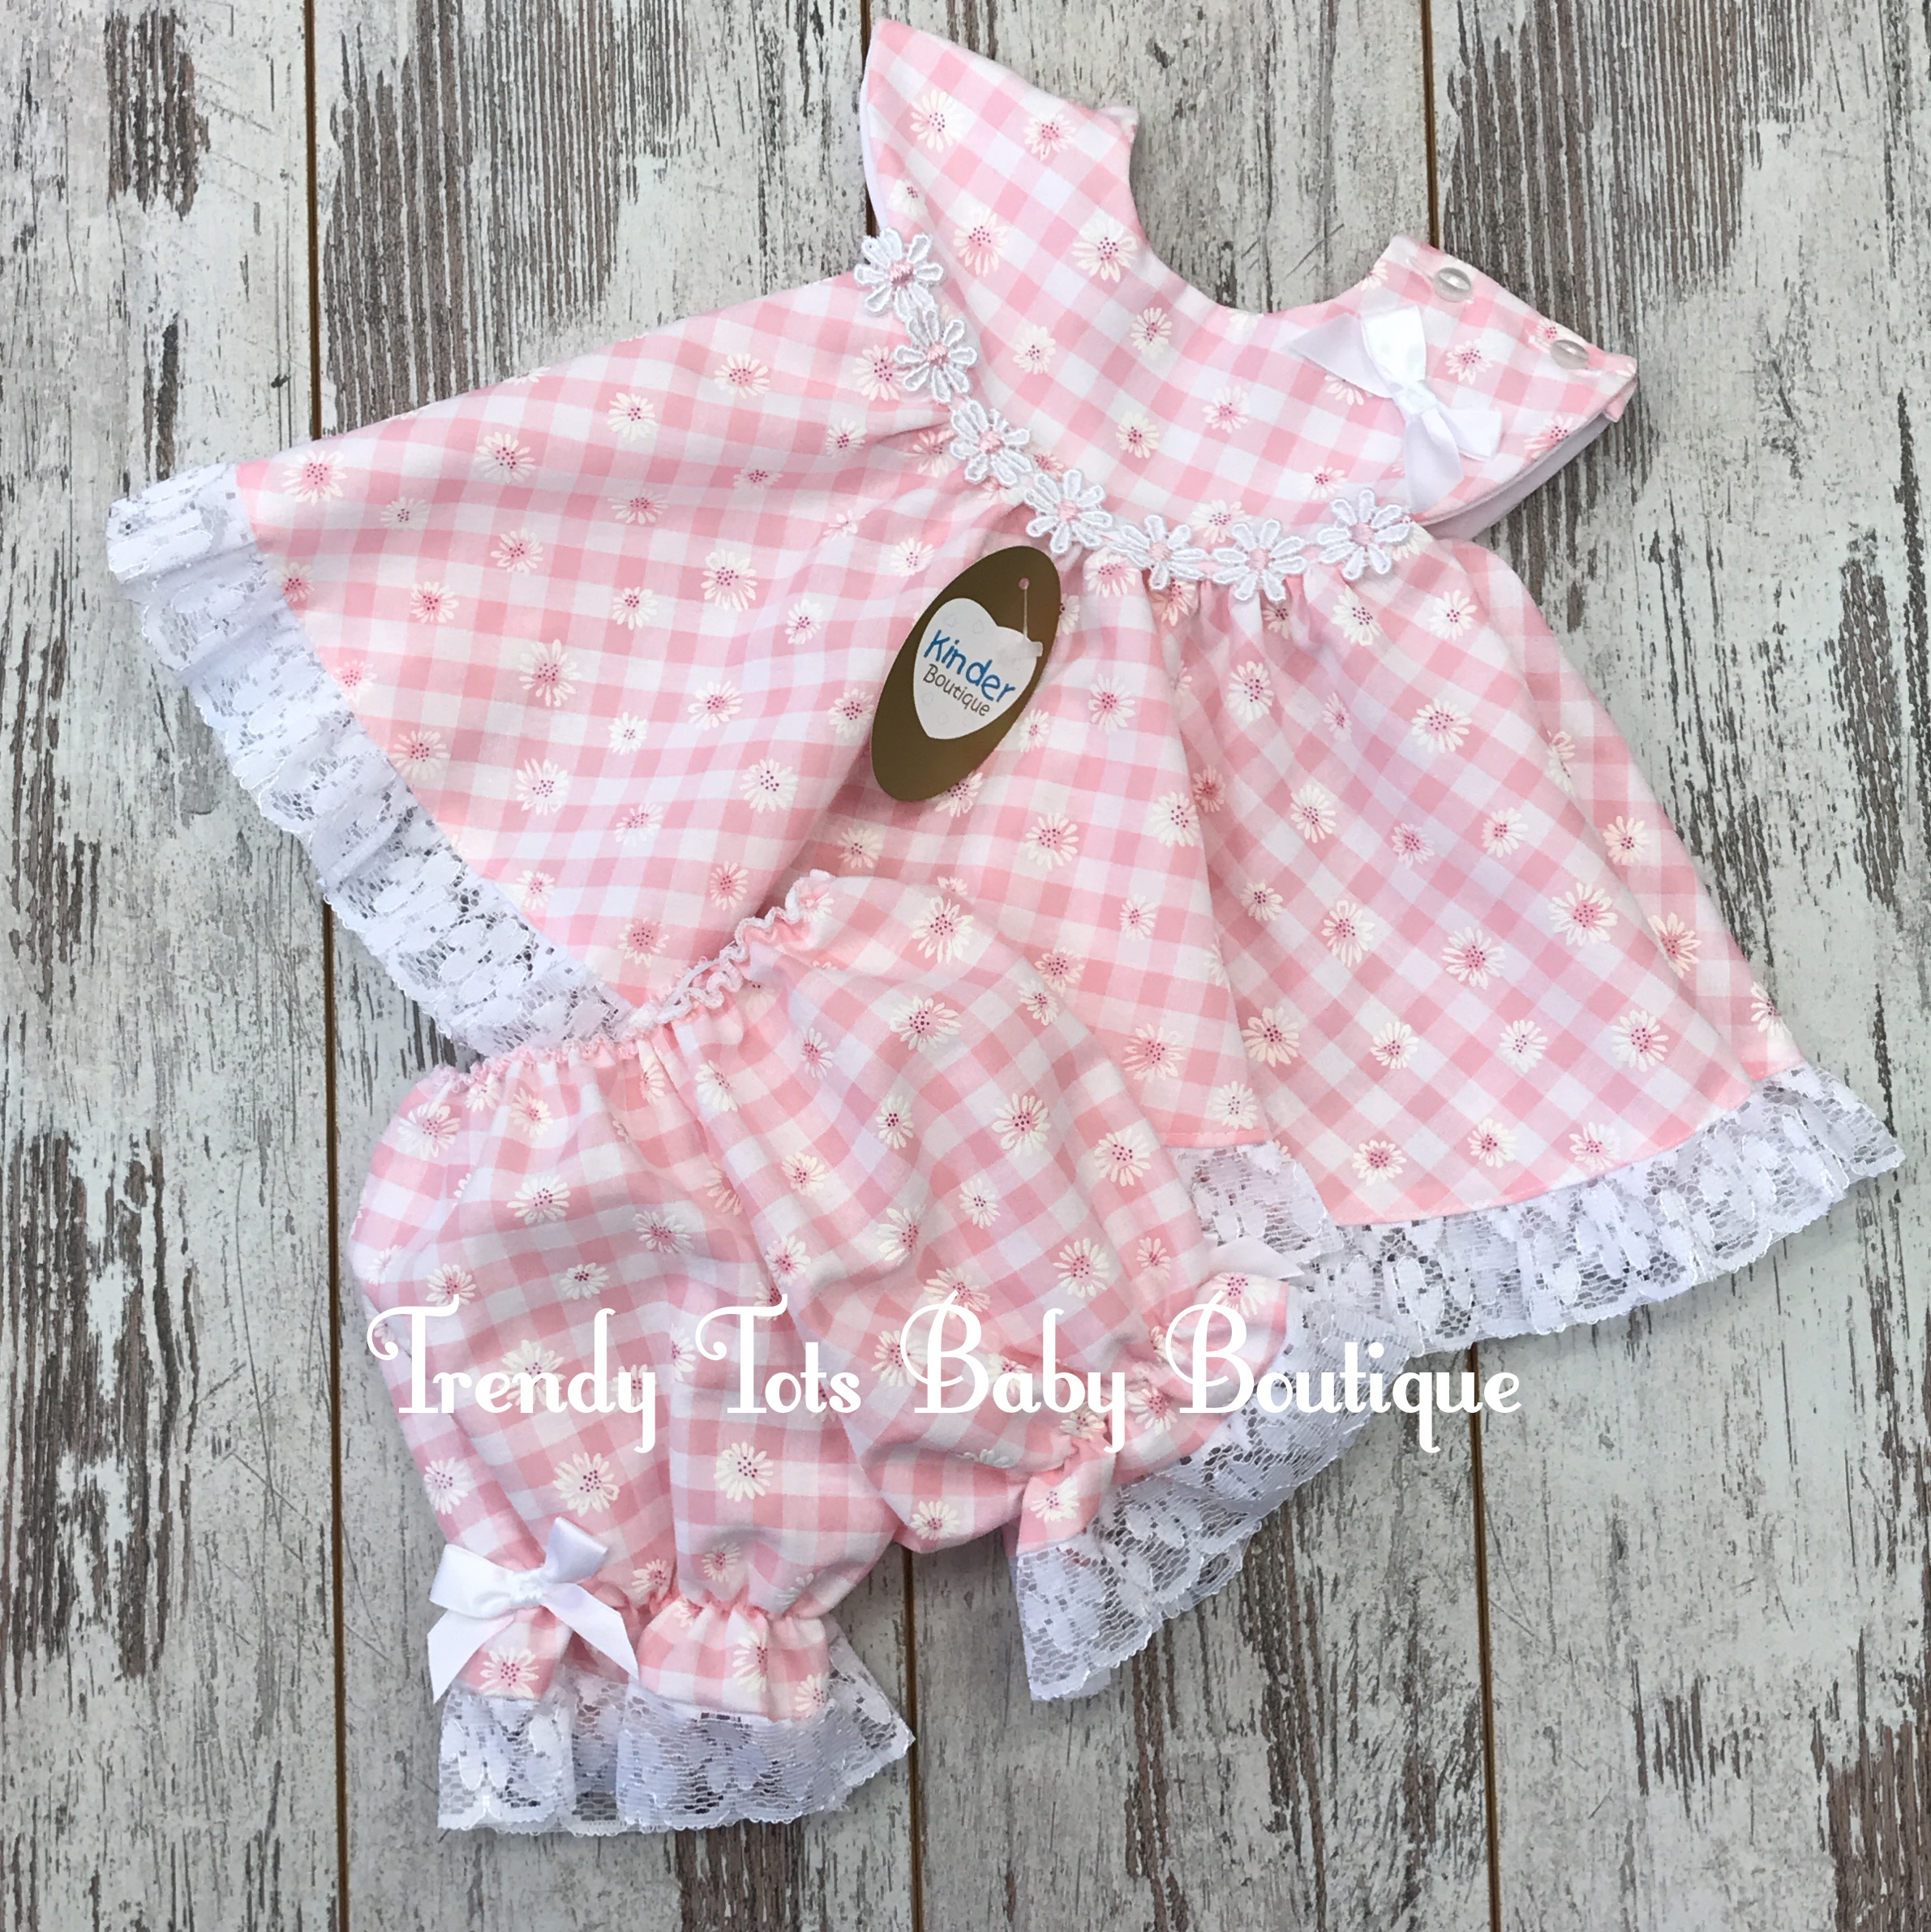 Daisy Summer Dress Trendy Tots Baby Boutique